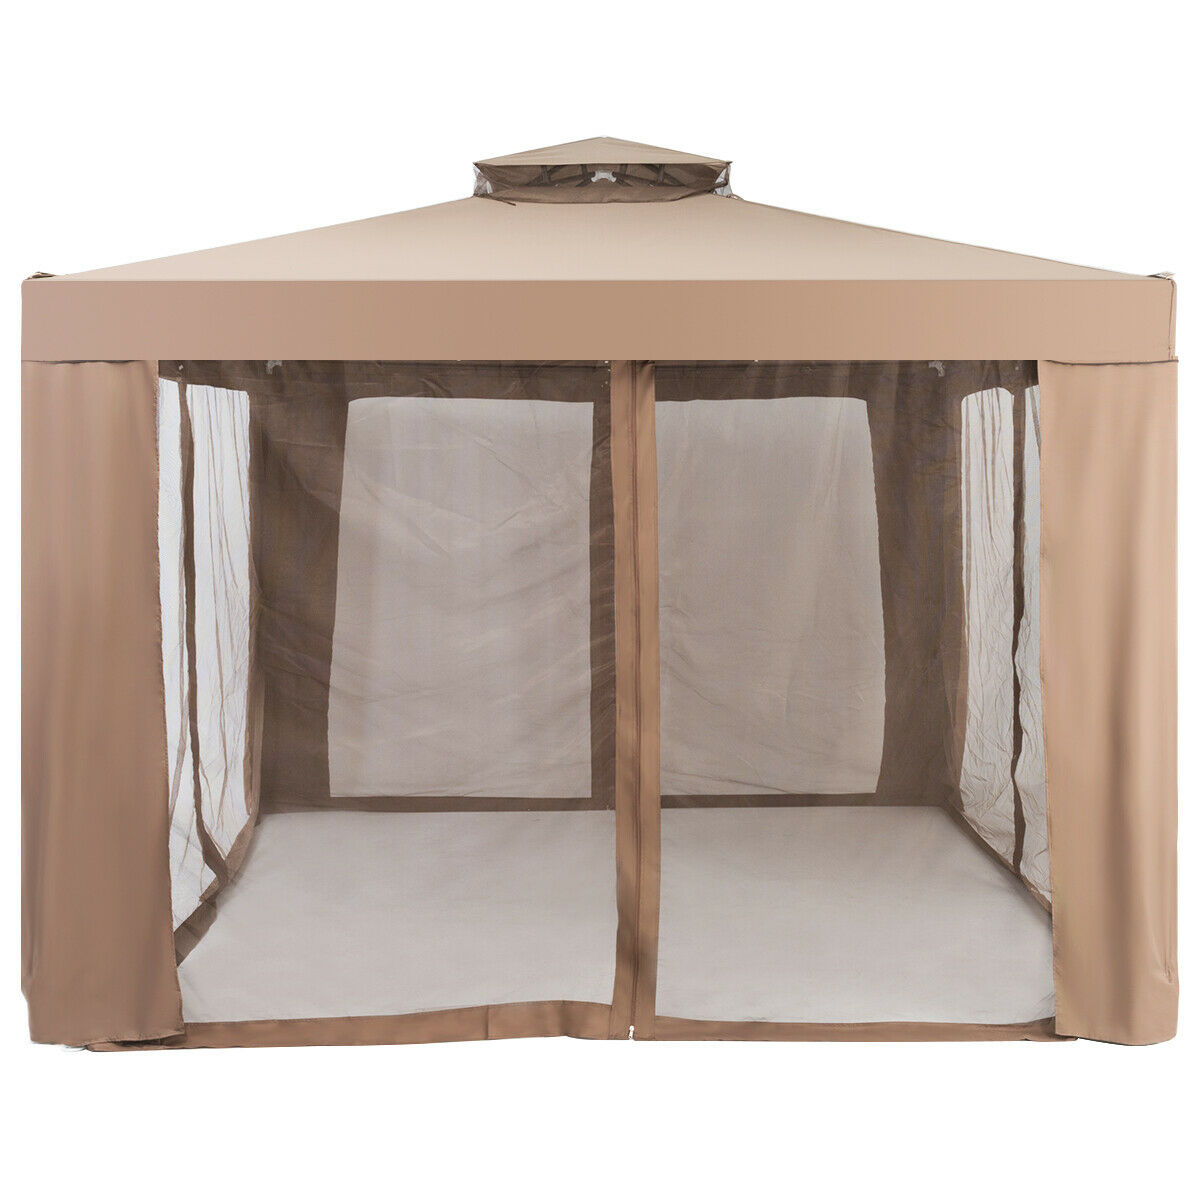 Canopy Gazebo Tent Shelter Garden Lawn Patio with Mosquito Netting